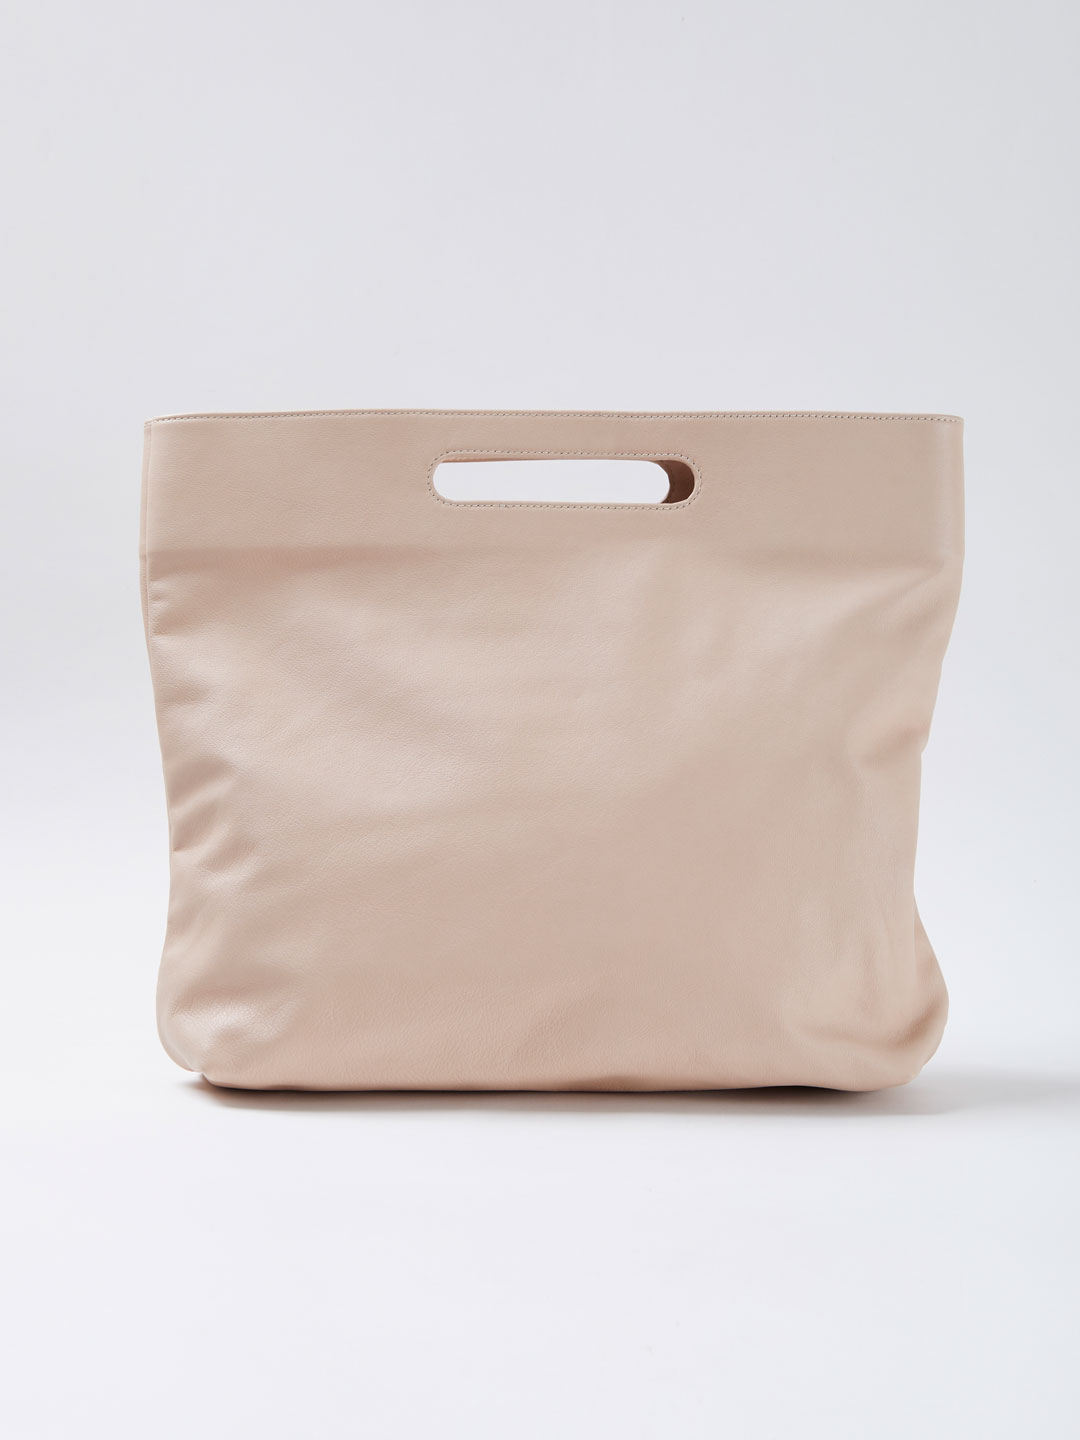 Slouch Foldover Bag - Light Beige